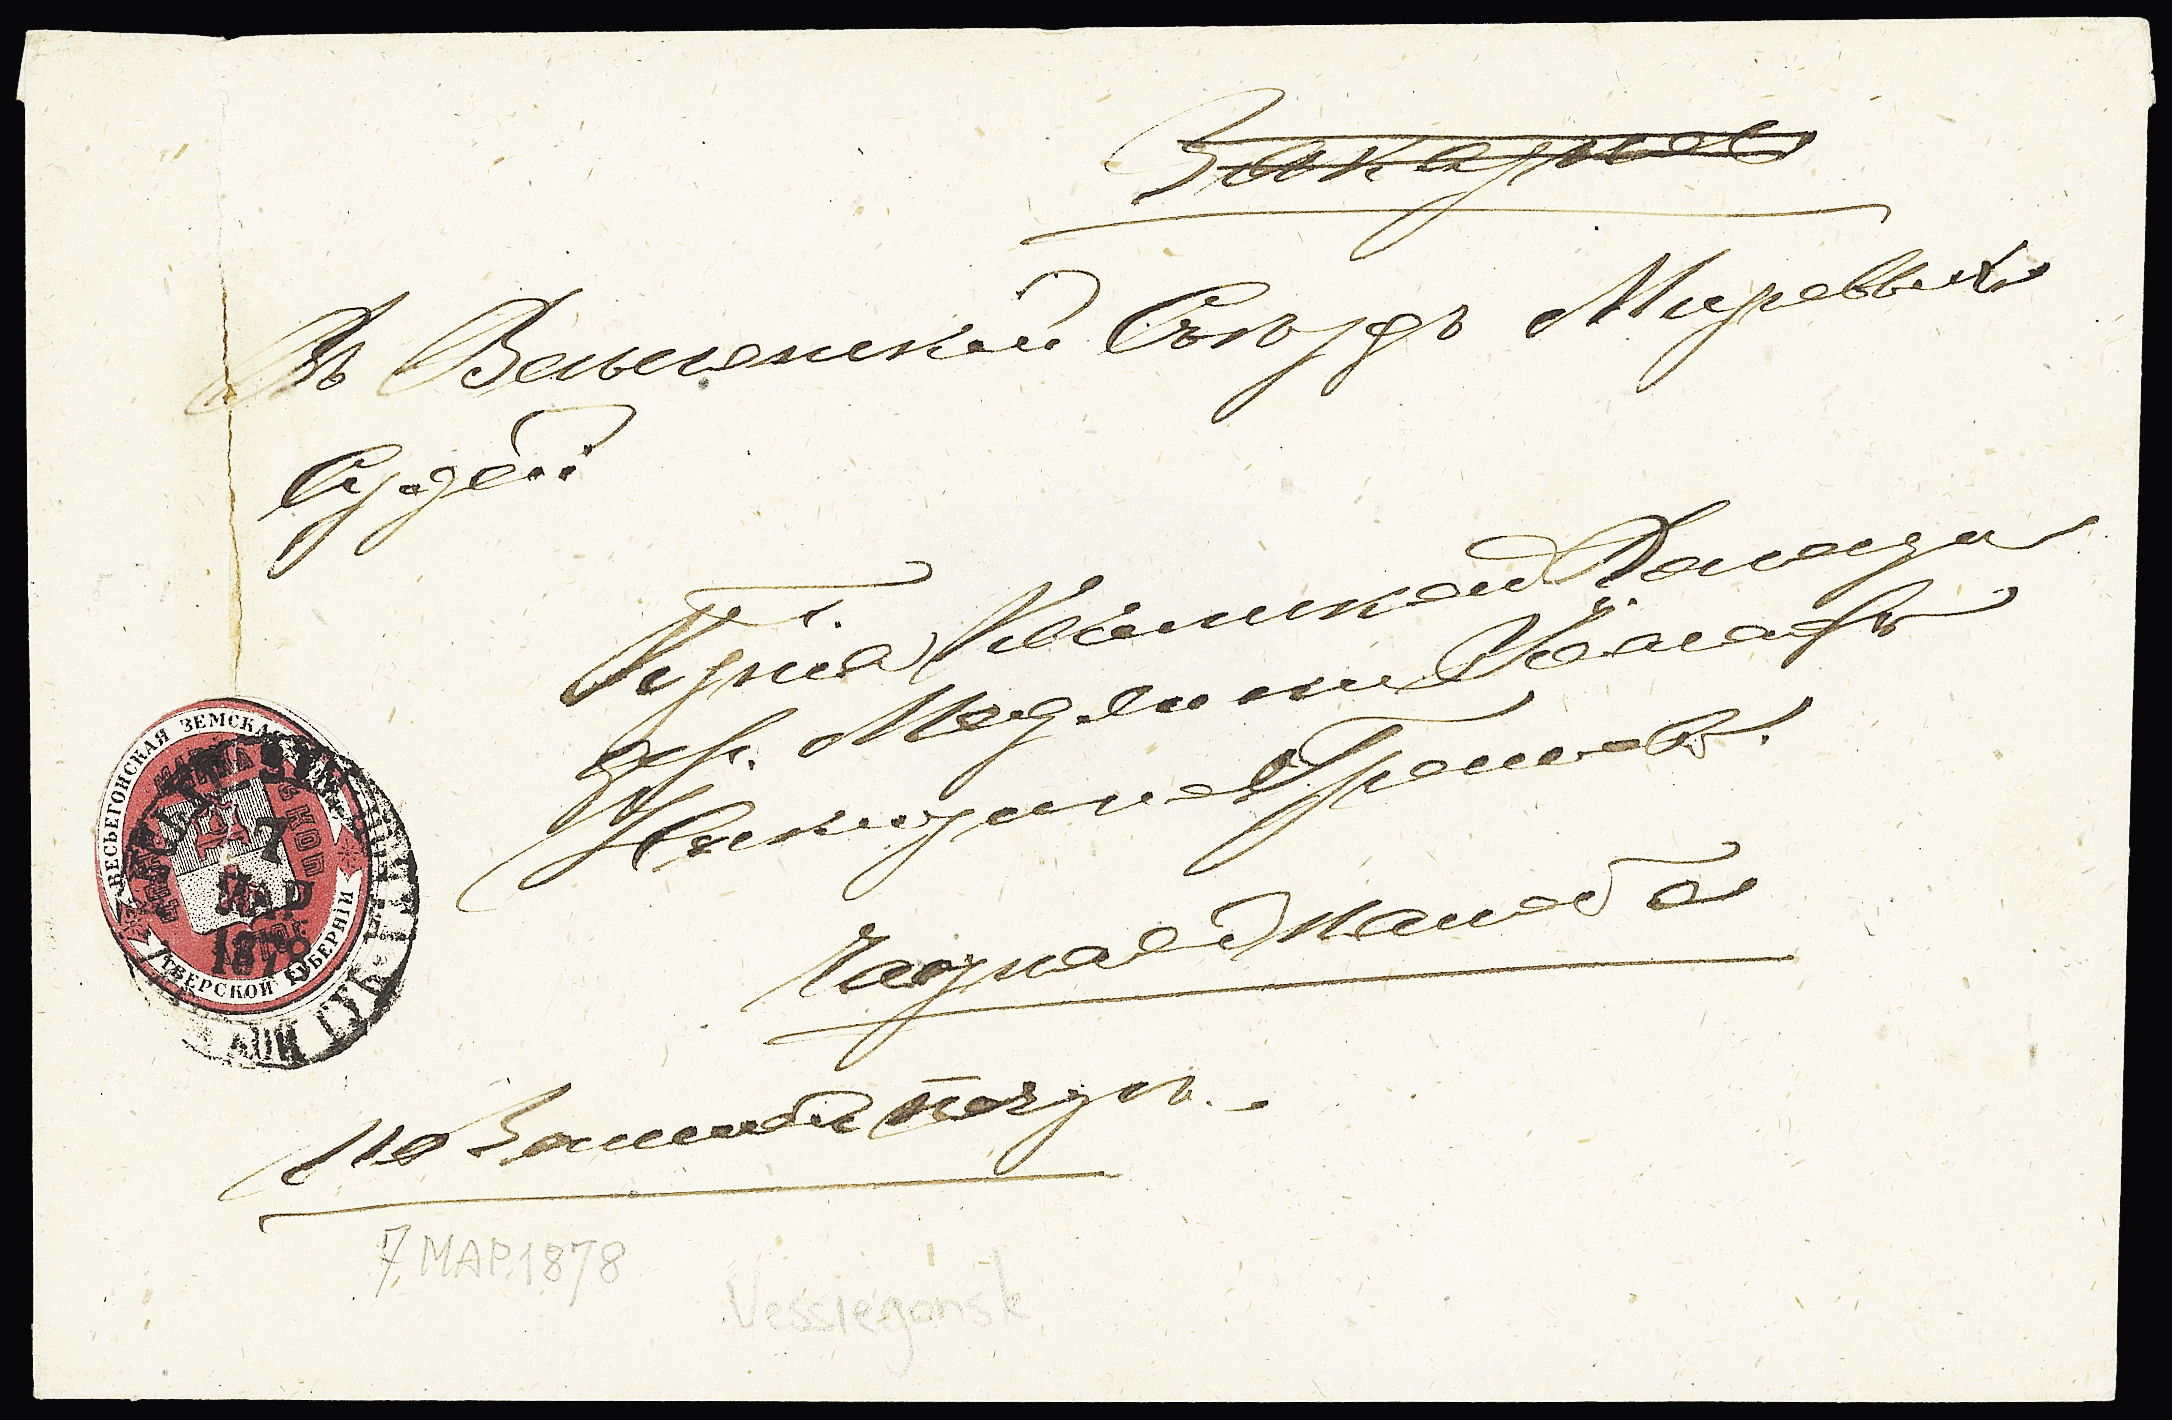 Lot 589 - Eastern Europe » RUSSIA - ZEMSTVOS » Vessiegonsk (Tver Government)  -  Le Timbre Classique SA SALE ON OFFERS N ° 37 PARIS